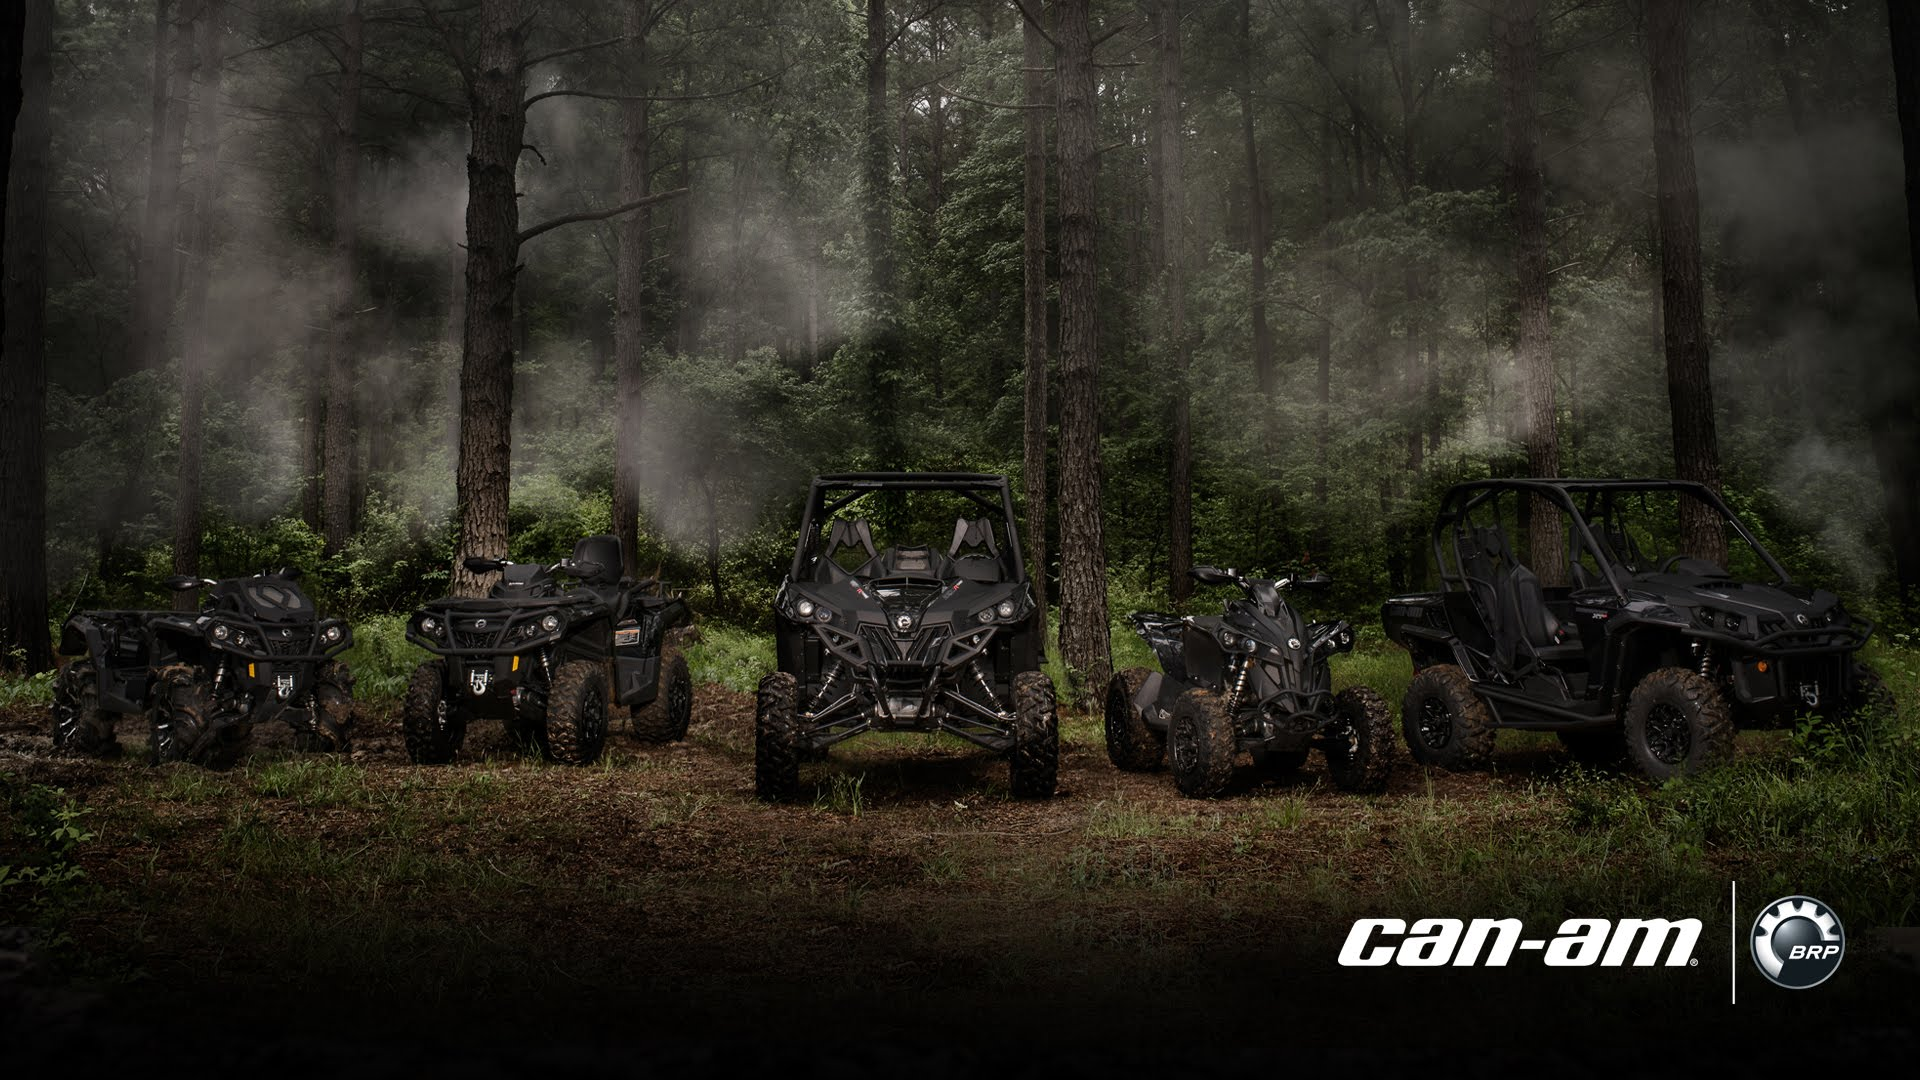 1920x1080 - Can-Am Wallpapers 20